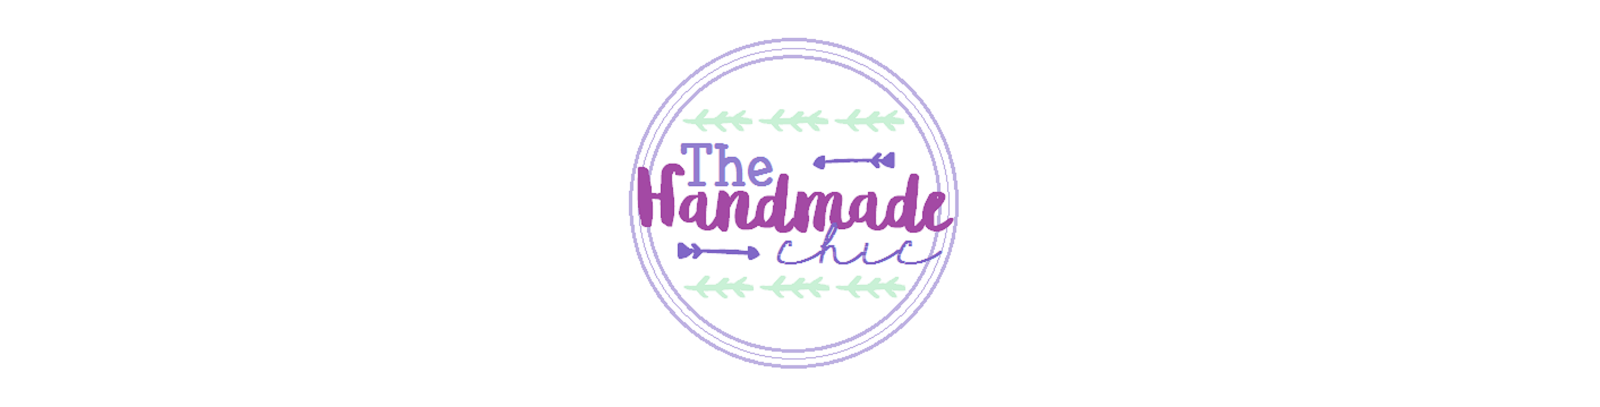 The Handmade Chic